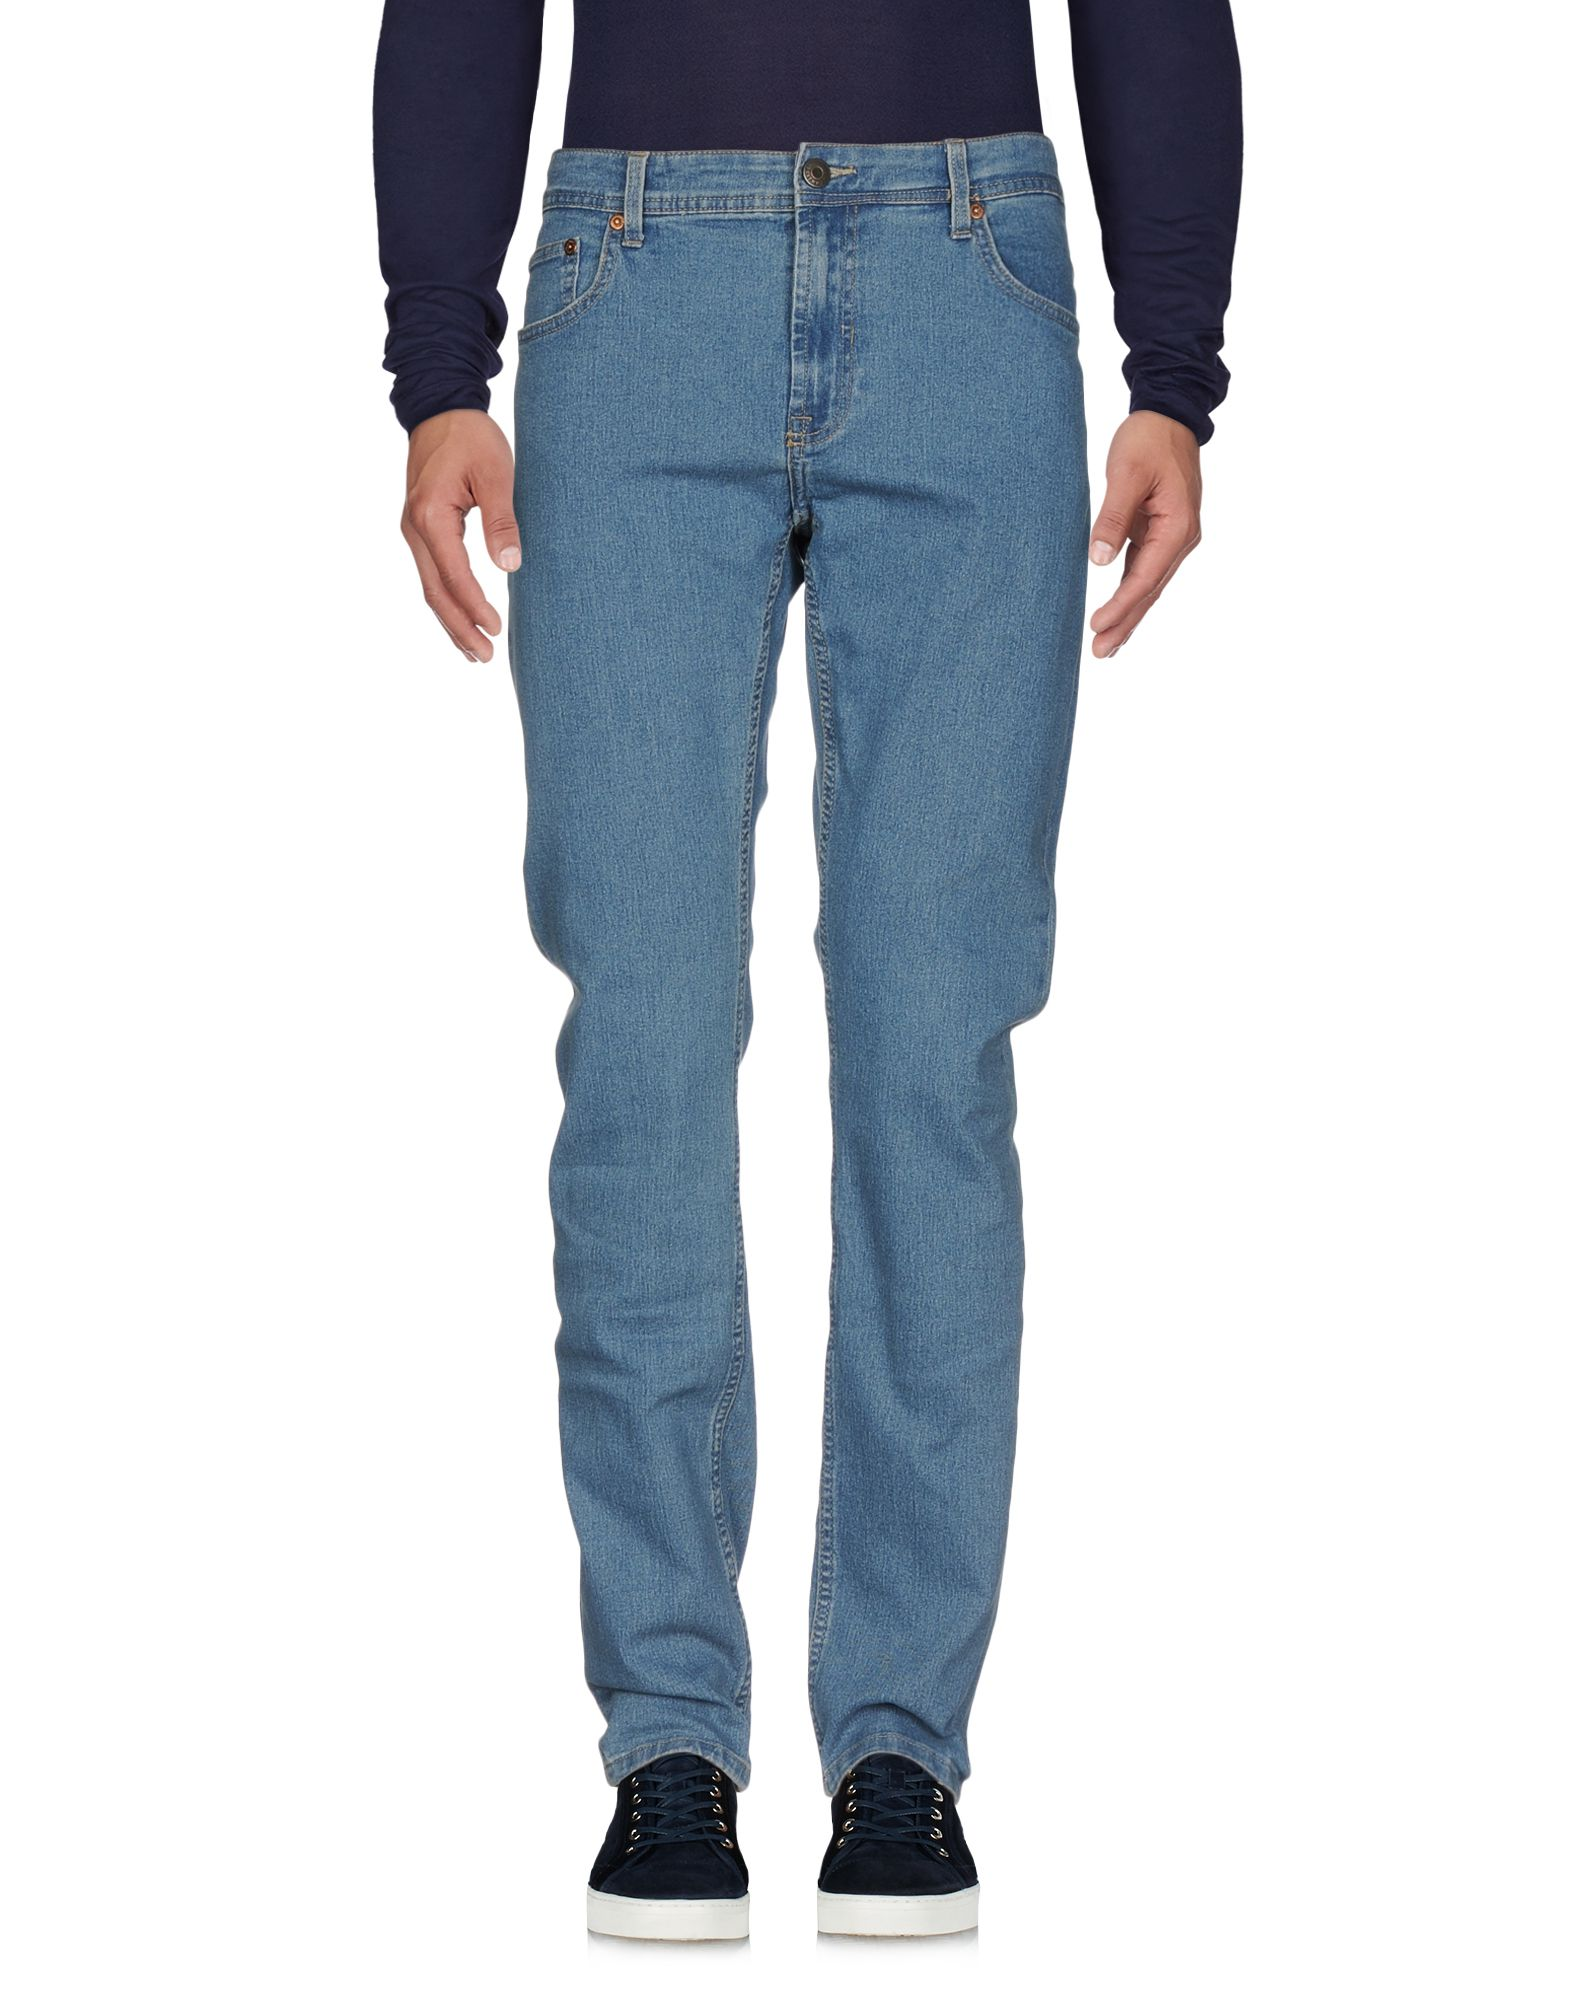 Pantaloni Jeans Only & & Only Sons Uomo - 42673252GB 2beadf